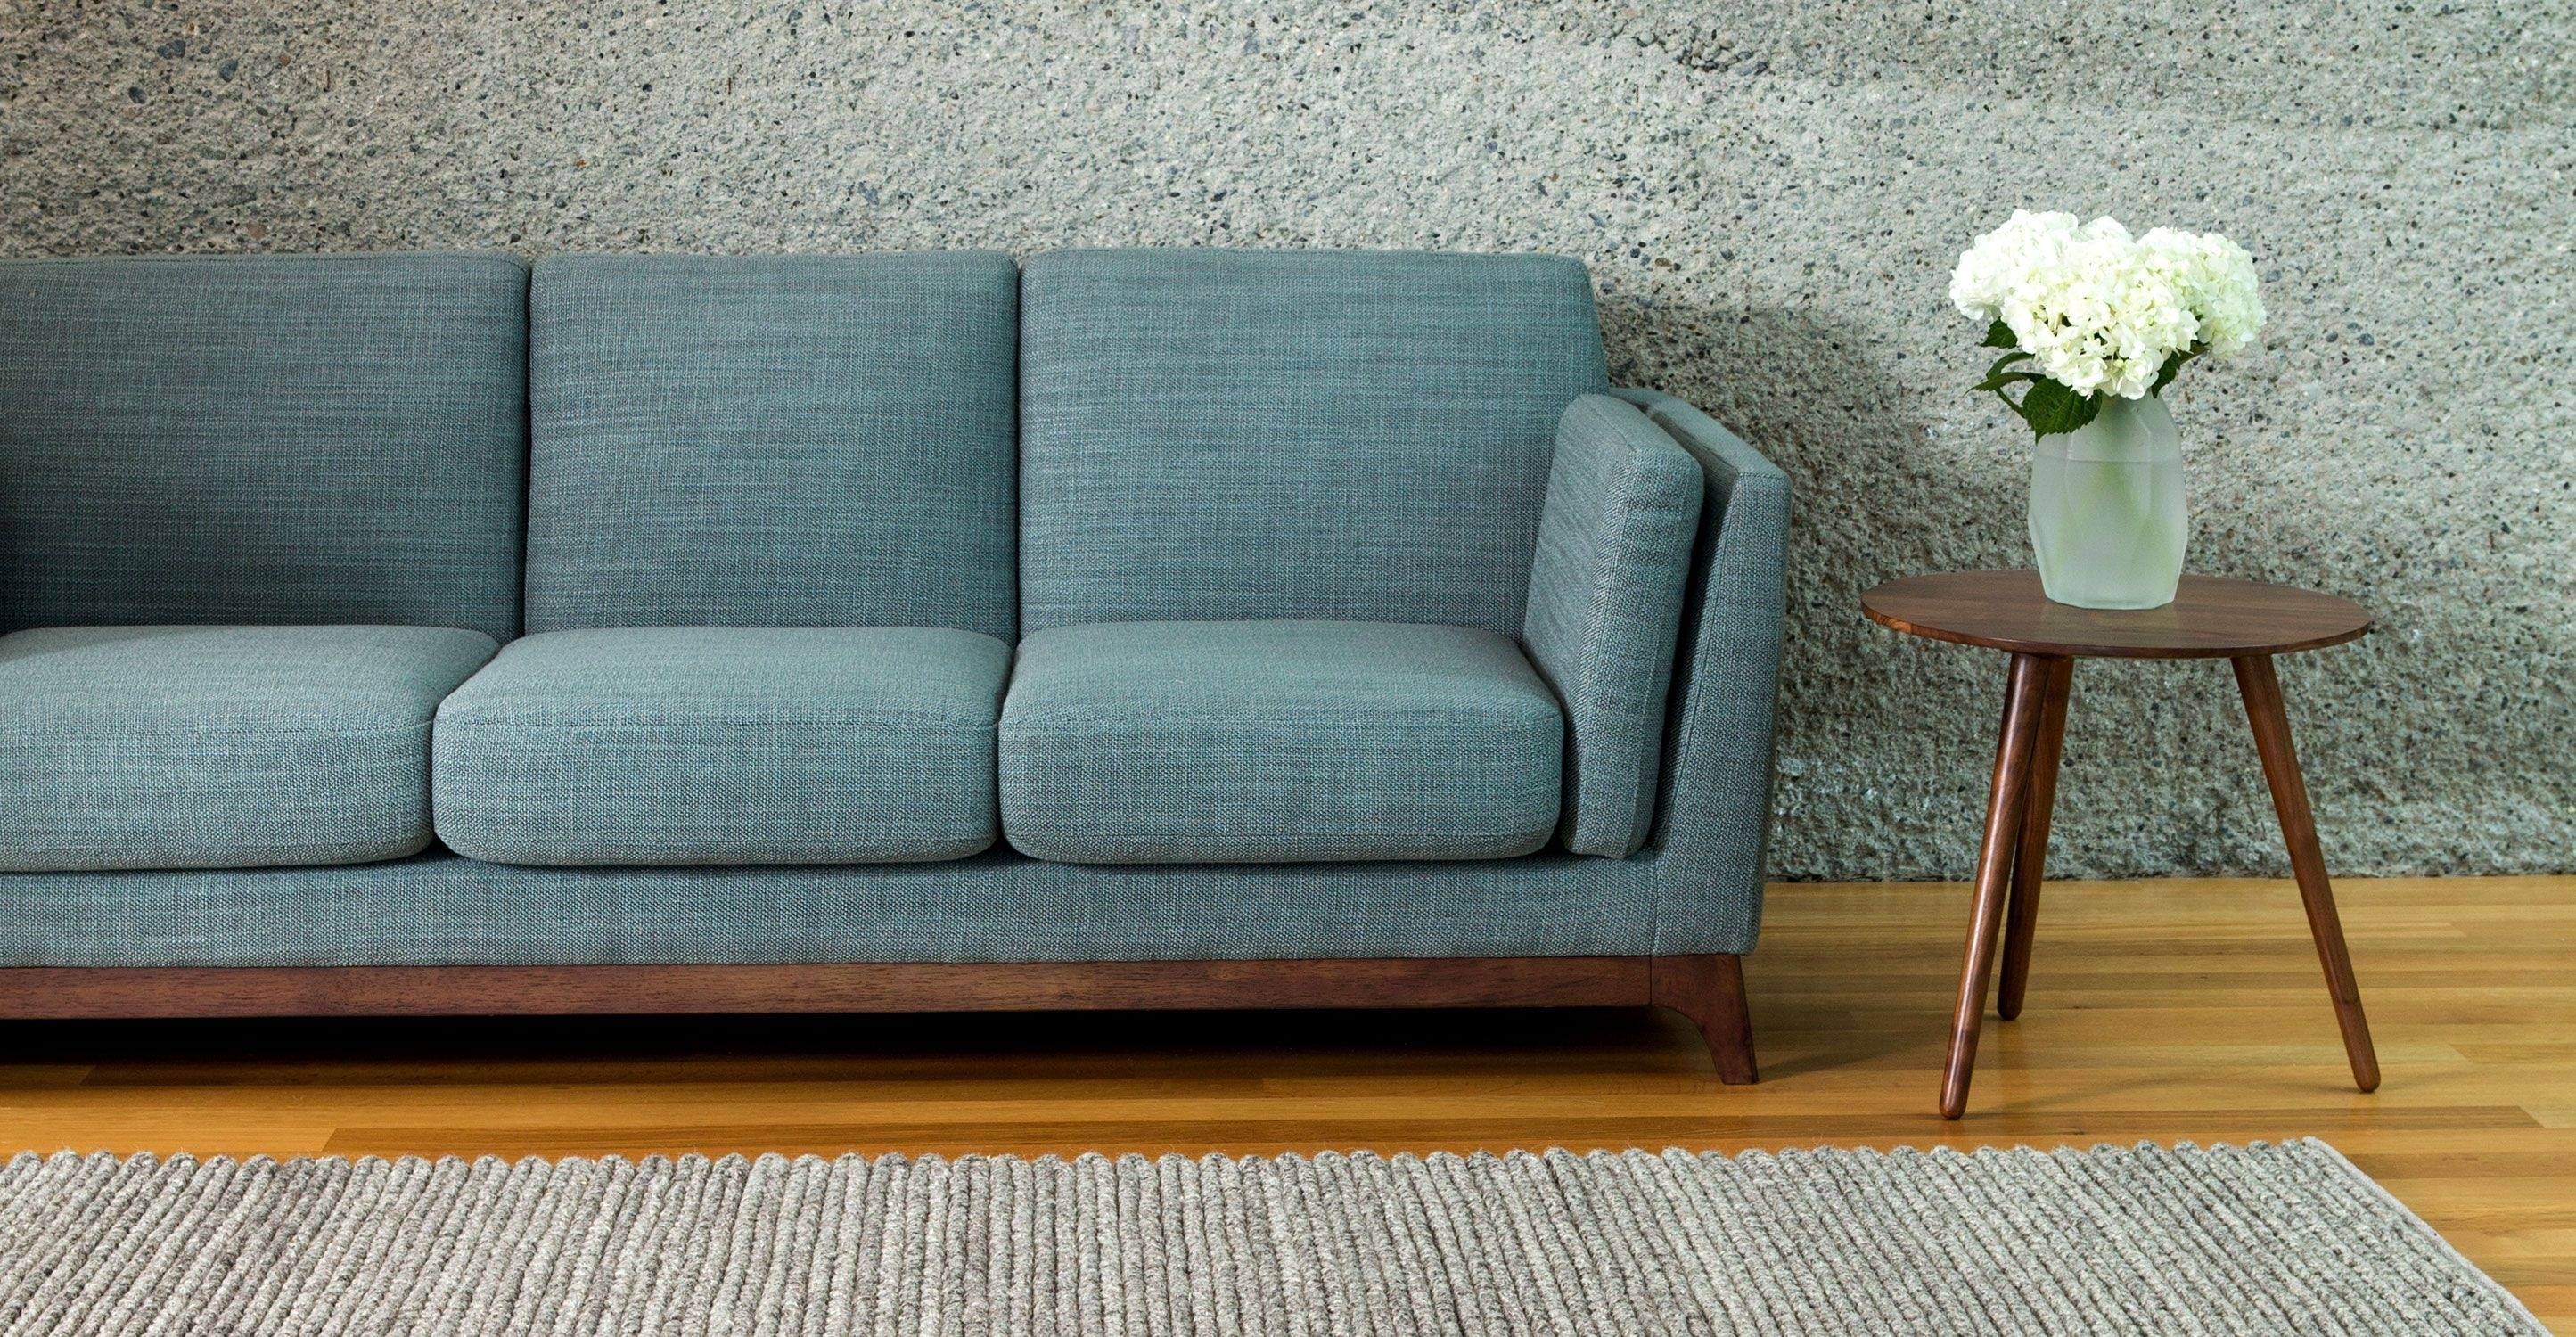 Blue Sofa 3 Seater With Solid Wood Legs | Article Ceni Modern Within Aqua Sofas (Image 6 of 10)